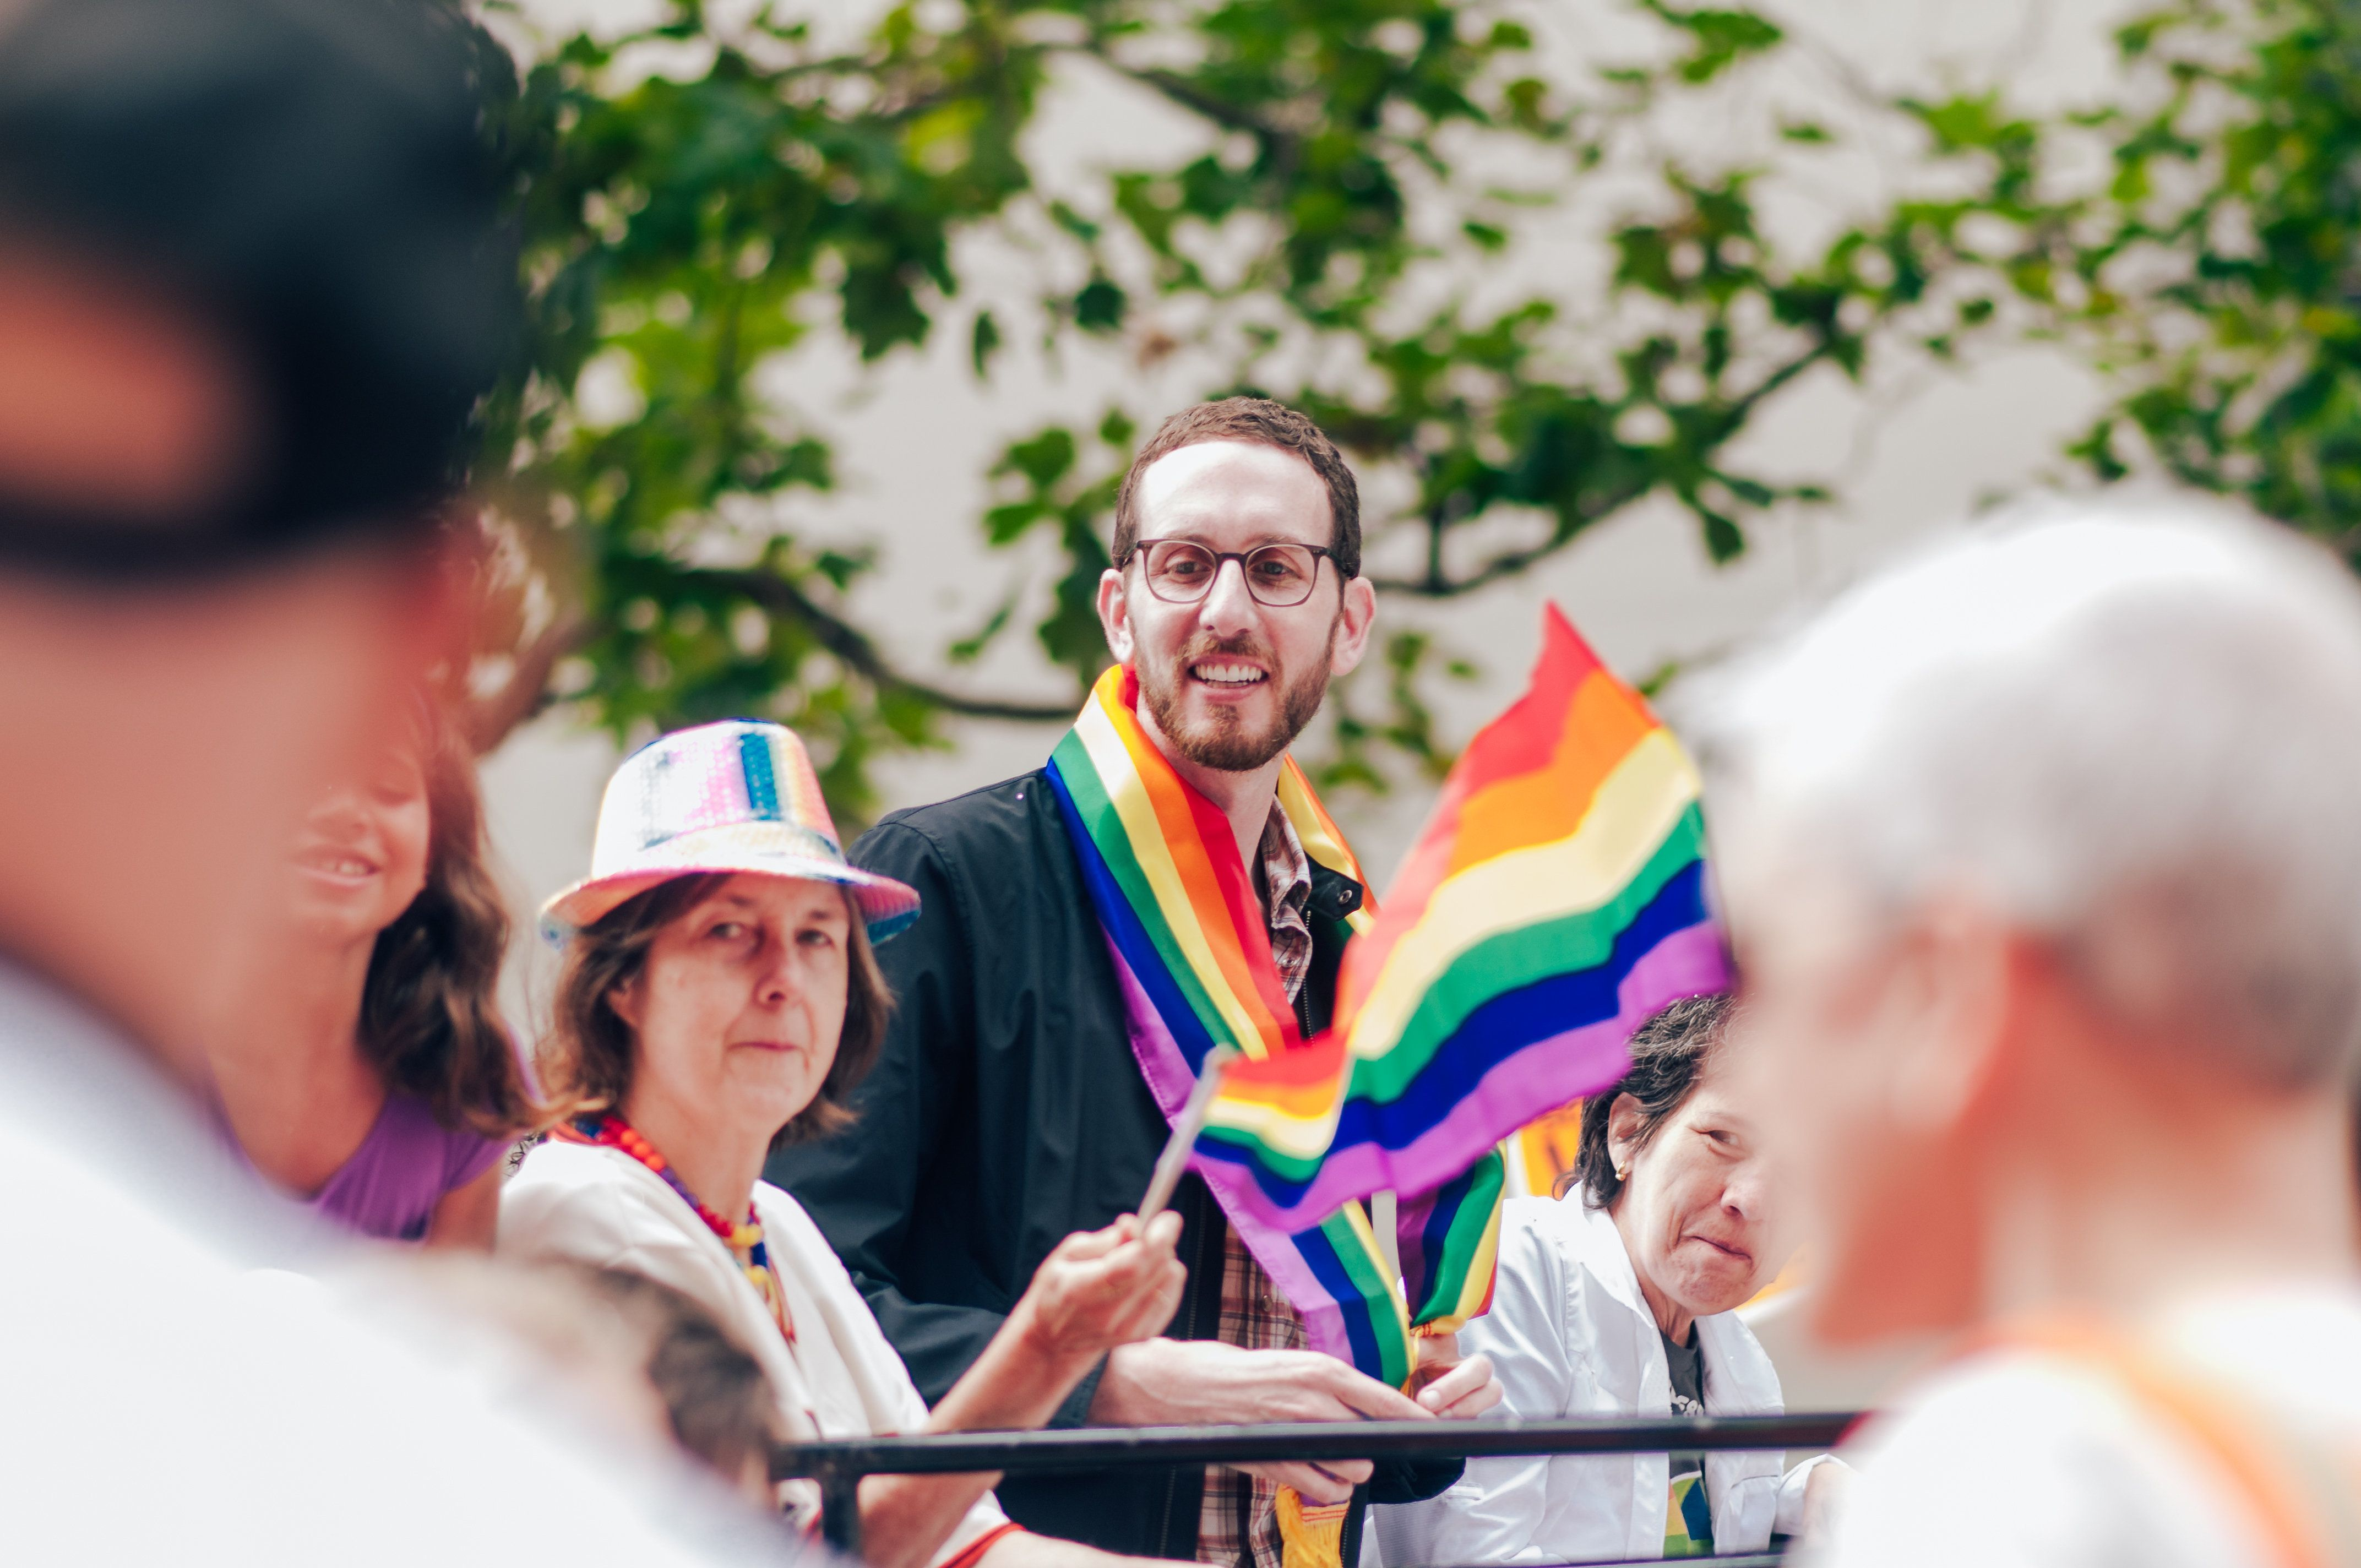 San Francisco, CA, USA - June 25, 2017: The 2017 Pride Parade California State Senator, Scott Wiener looks out into the crowd from a float in downtown San Francisco.